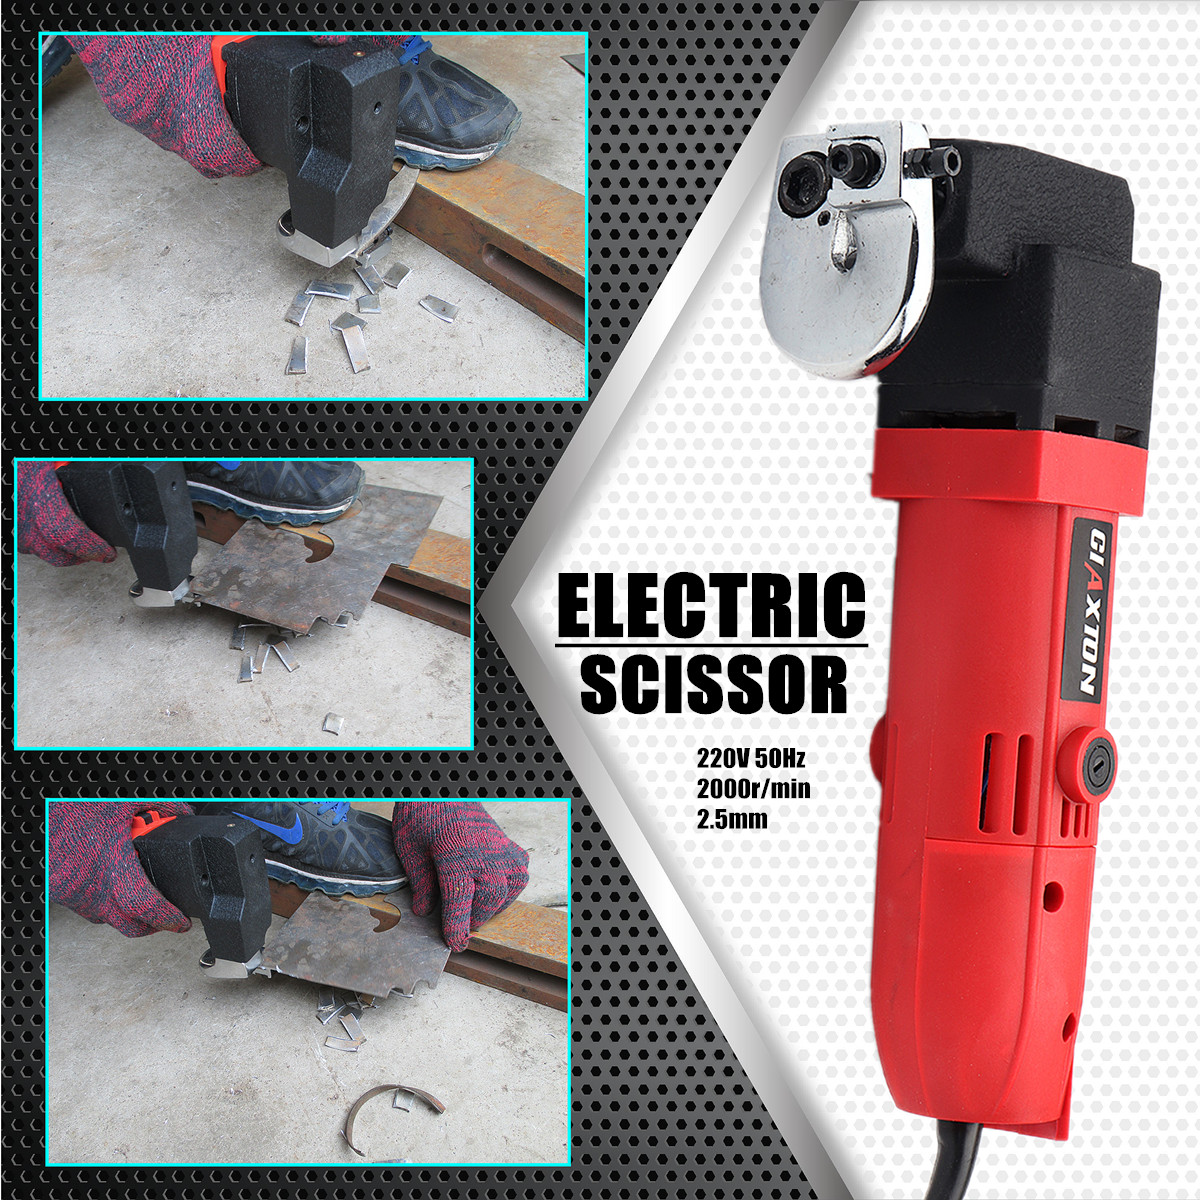 500W 220V 2000r/min Professional Electric Sheet Metal Shear Snip Scissor Cutter EU Plug Power Tool 290x77x145mm Slide Switch